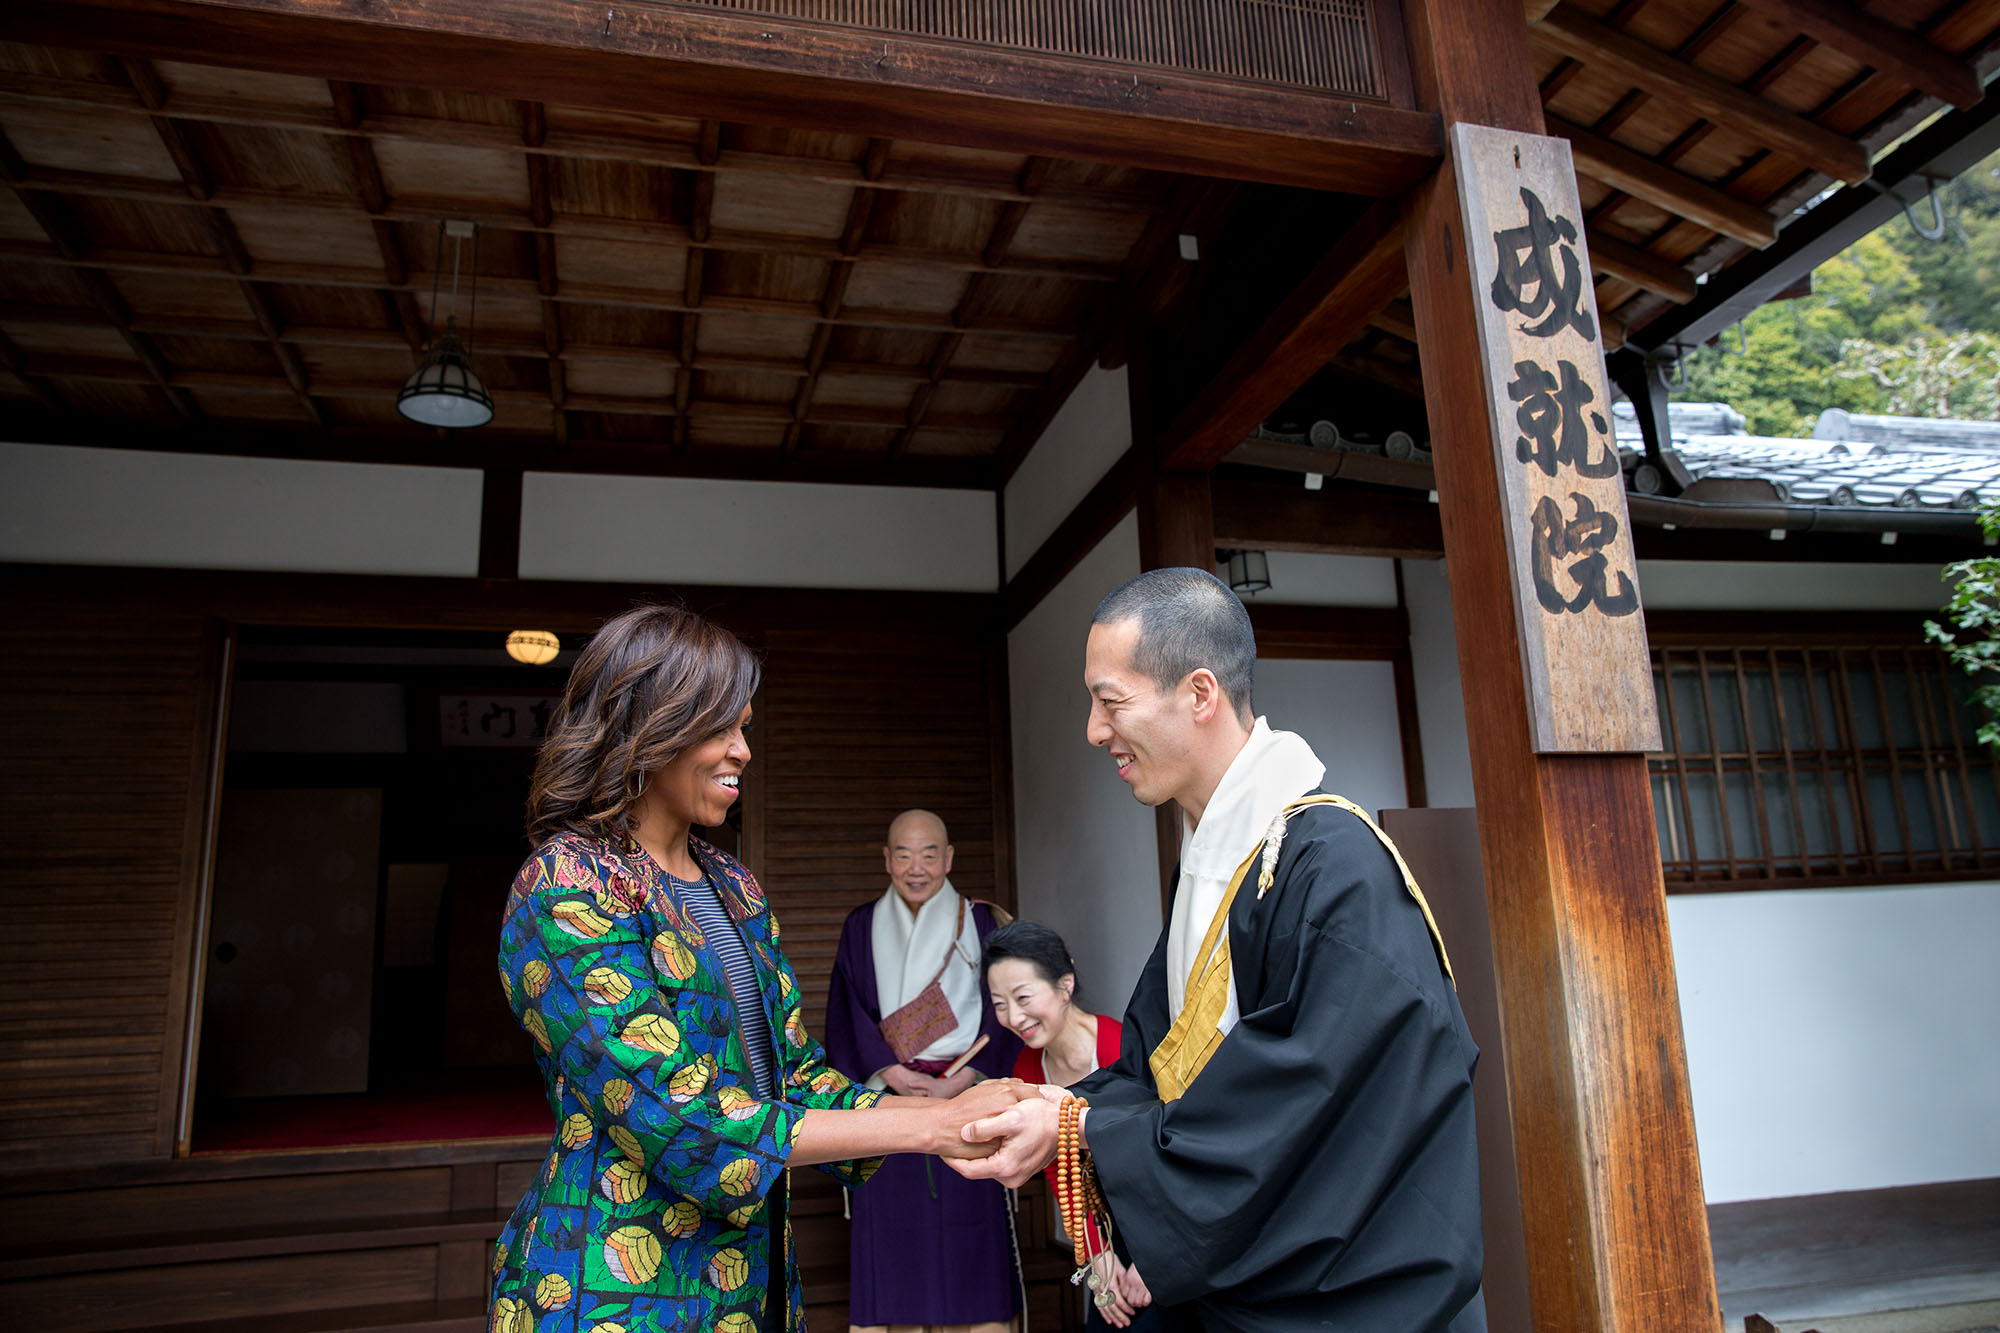 Eigen Onishi thanks the First Lady for her visit to Kiyomizu-dera Buddhist temple. (Official White House Photo by Amanda Lucidon)